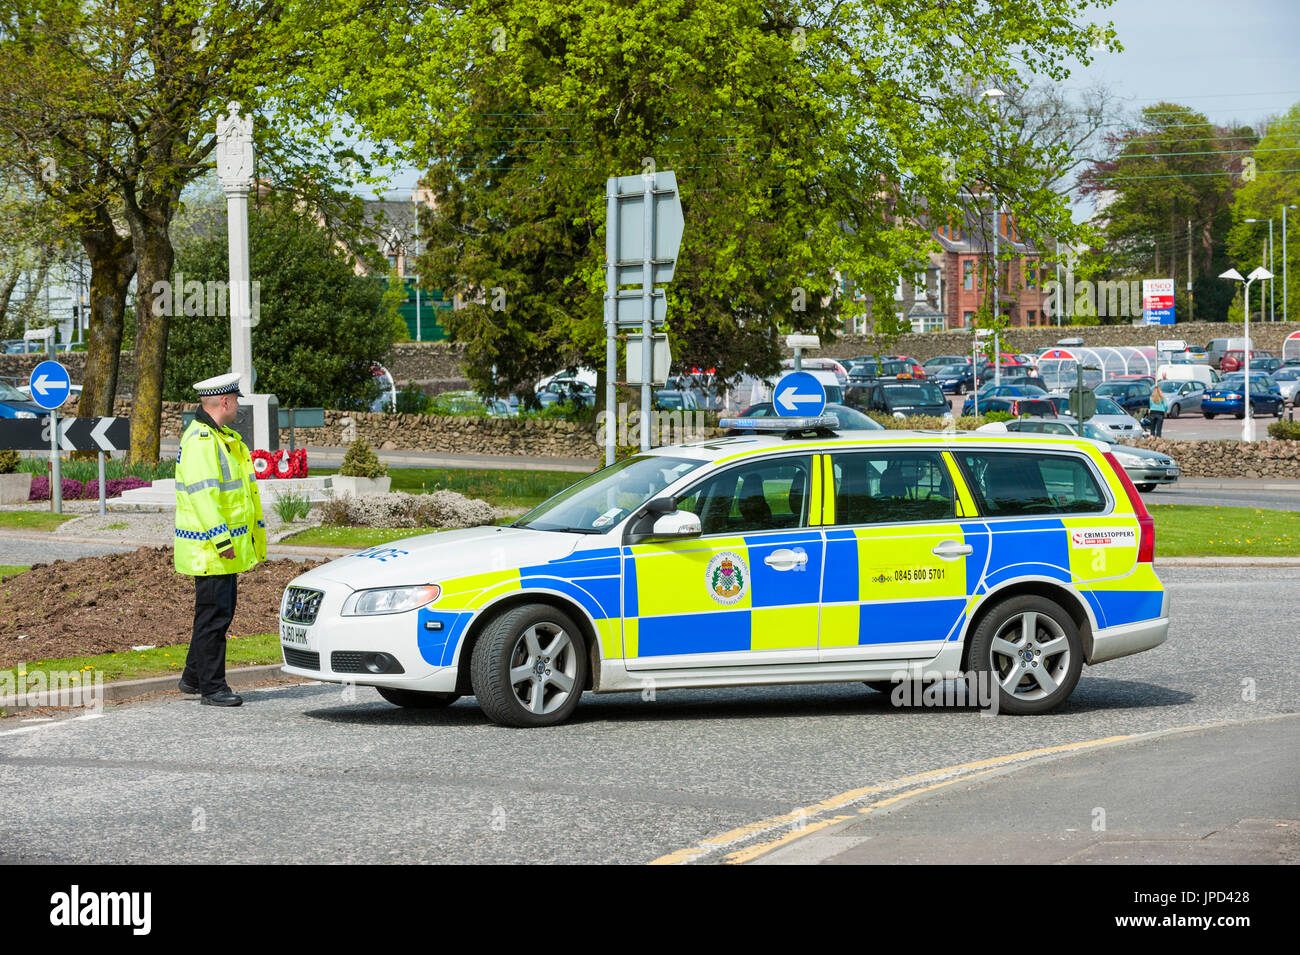 Castle Douglas, Scotland - April 25, 2011: A traffic police officer stands beside a police car that is being used as a road block. The road was closed - Stock Image